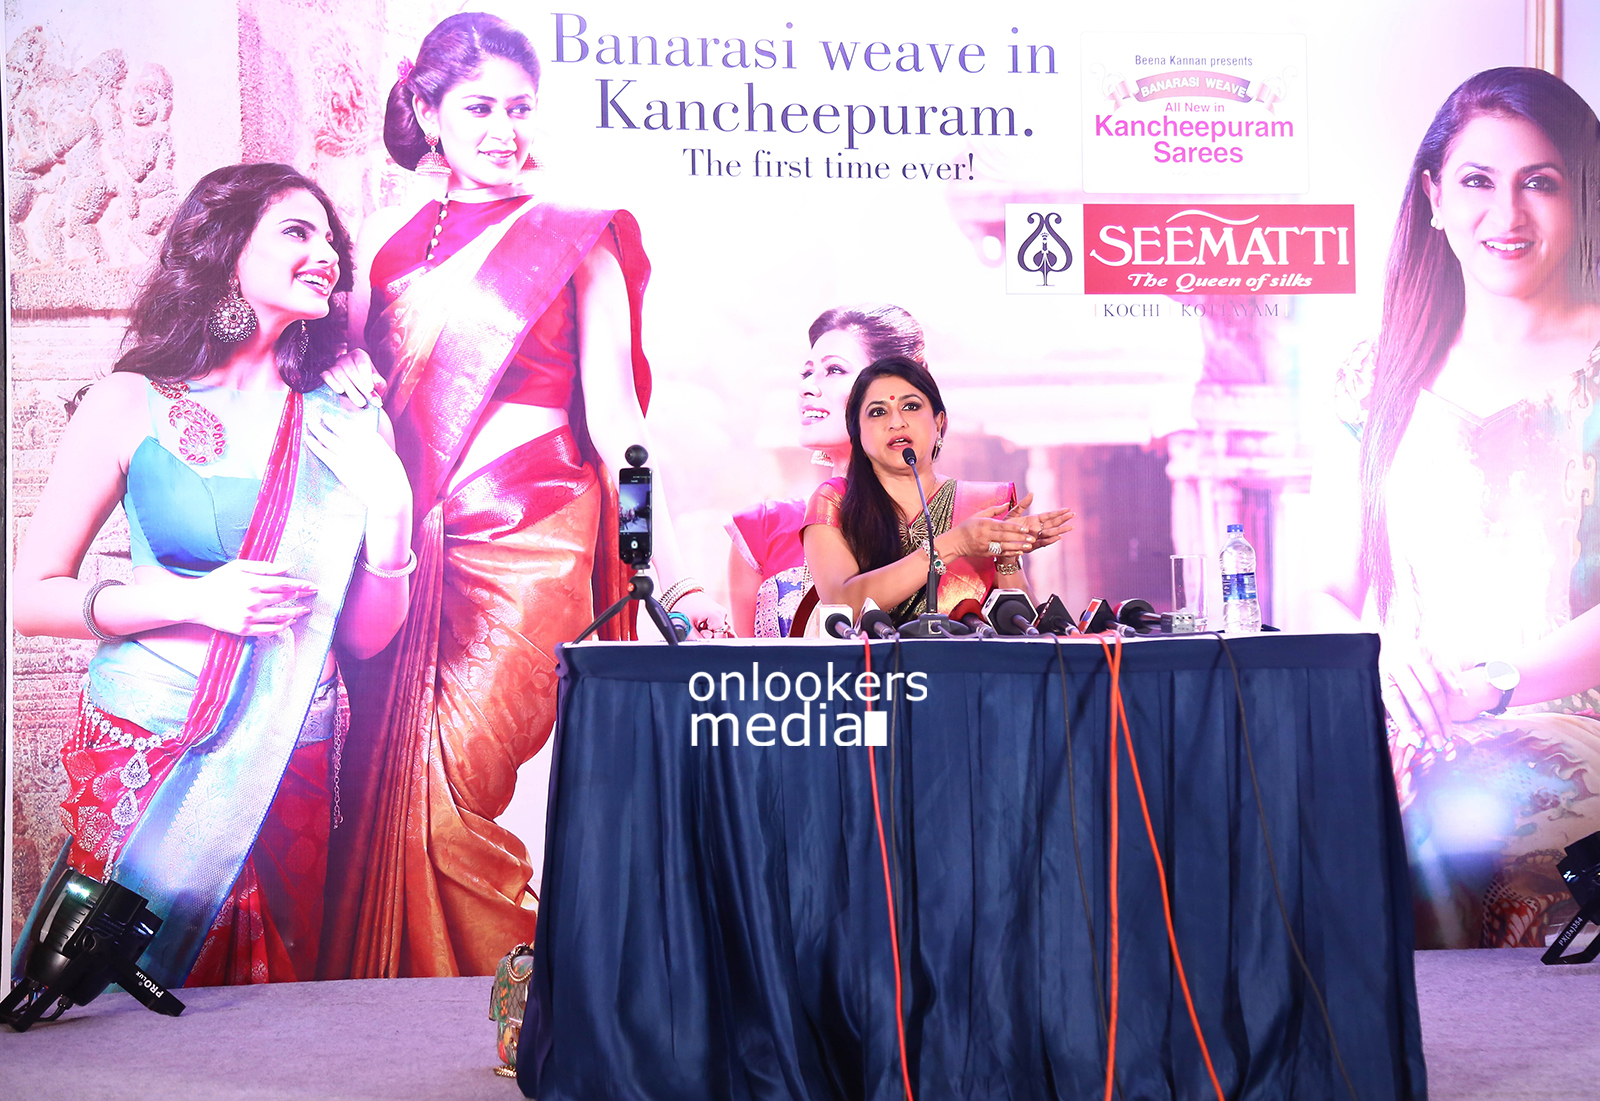 http://onlookersmedia.in/wp-content/uploads/2017/04/Seematti-Kanchi-Banaras-Bridal-Collection-2017-Press-Meet-8.jpg